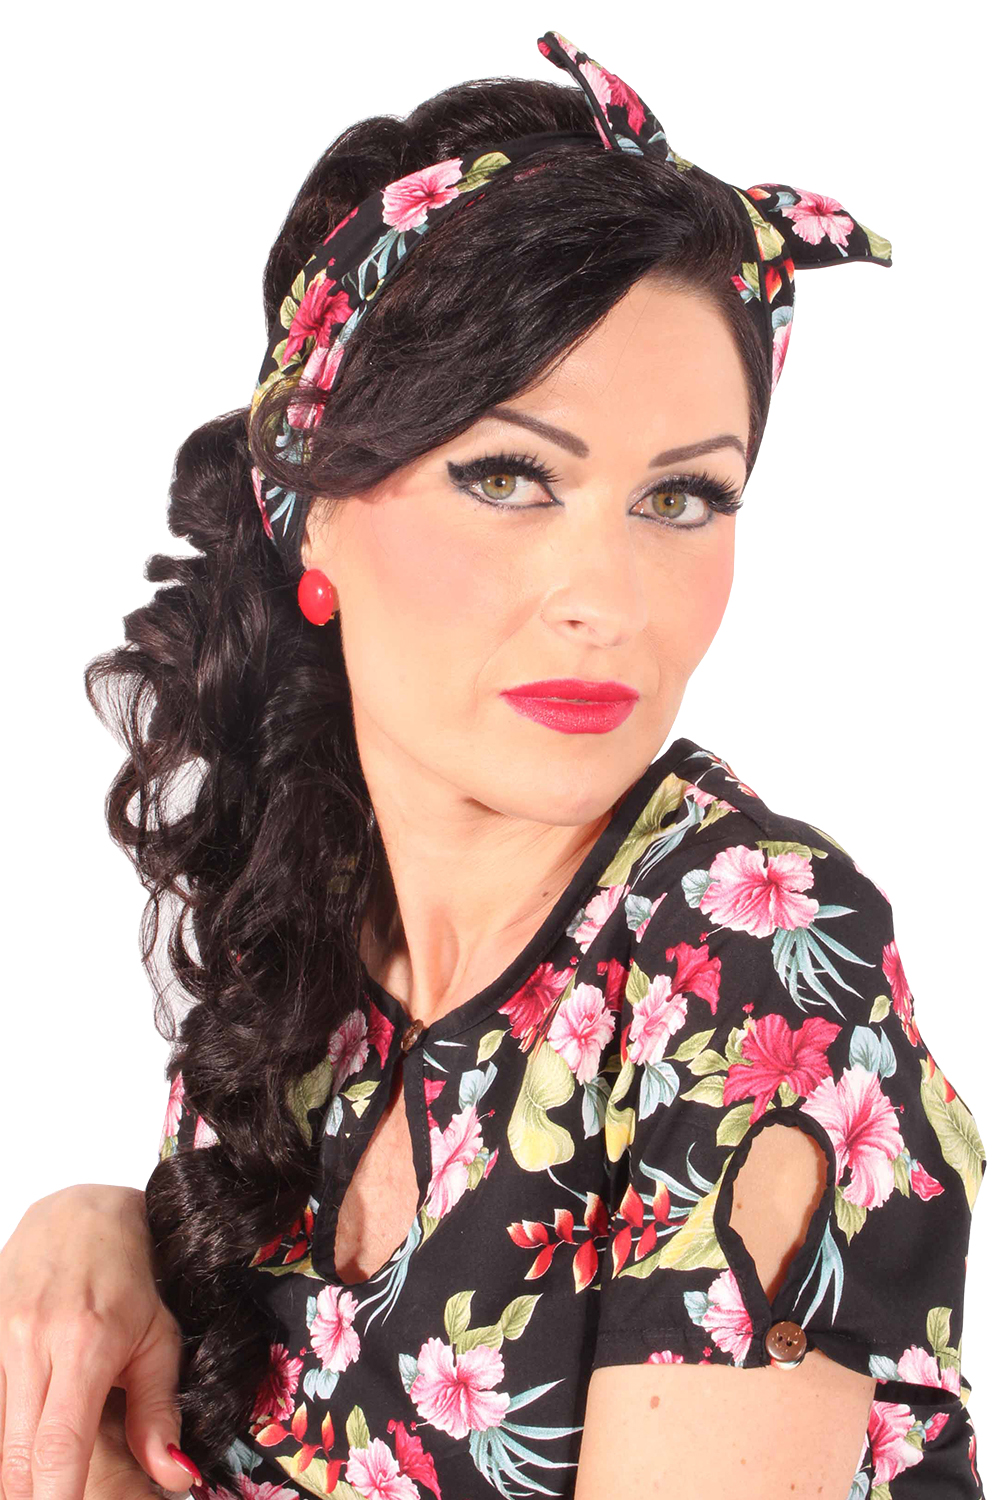 Hibiskus rockabilly Haarreif pin up Hawaiiblüten Frisuren Haarband